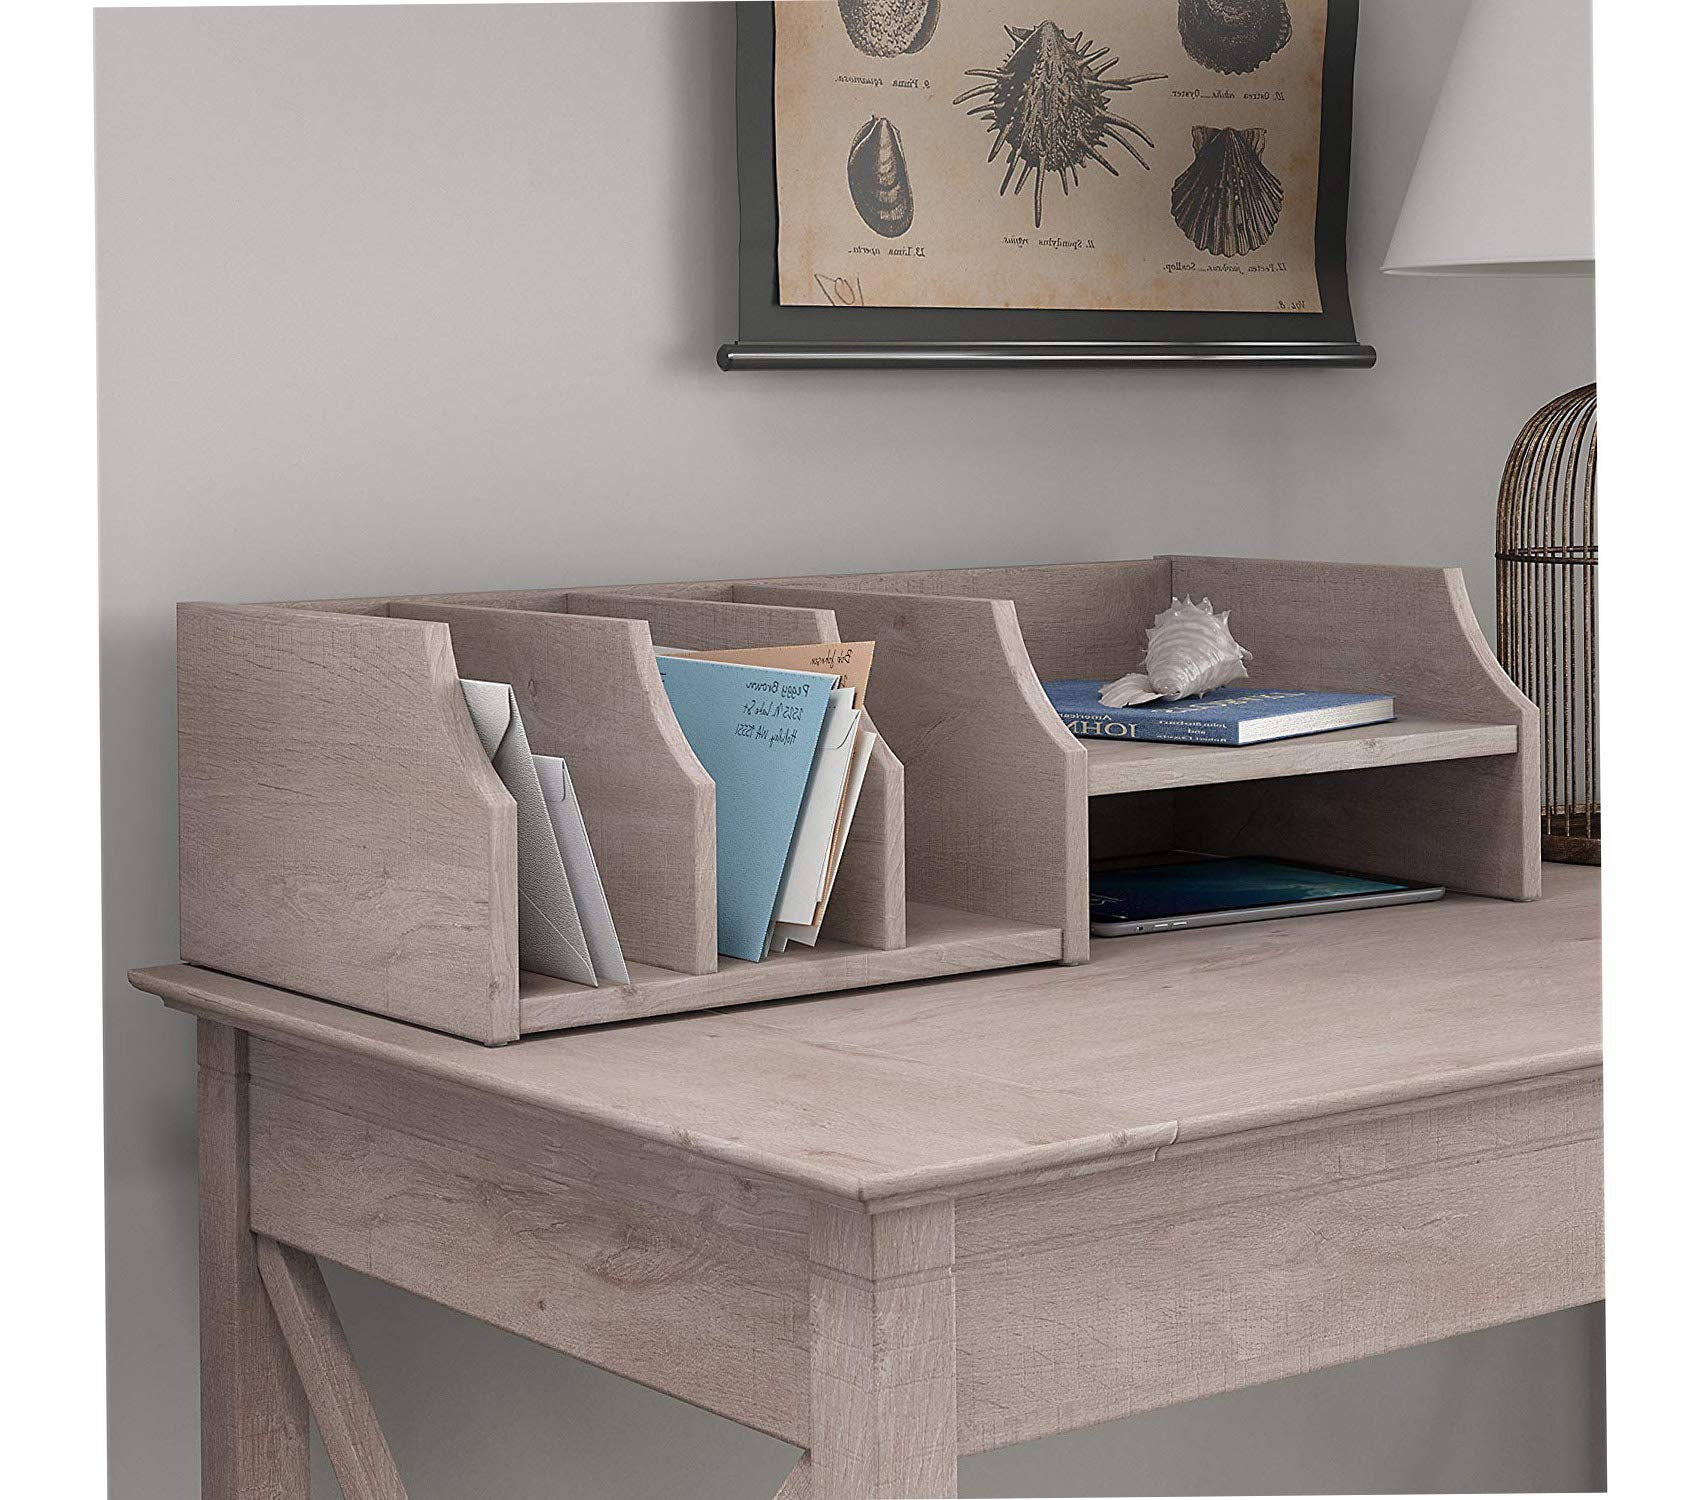 Wood & Style West Desktop Organizer in Washed Gray Decor Comfy Living Furniture Deluxe Premium Collection